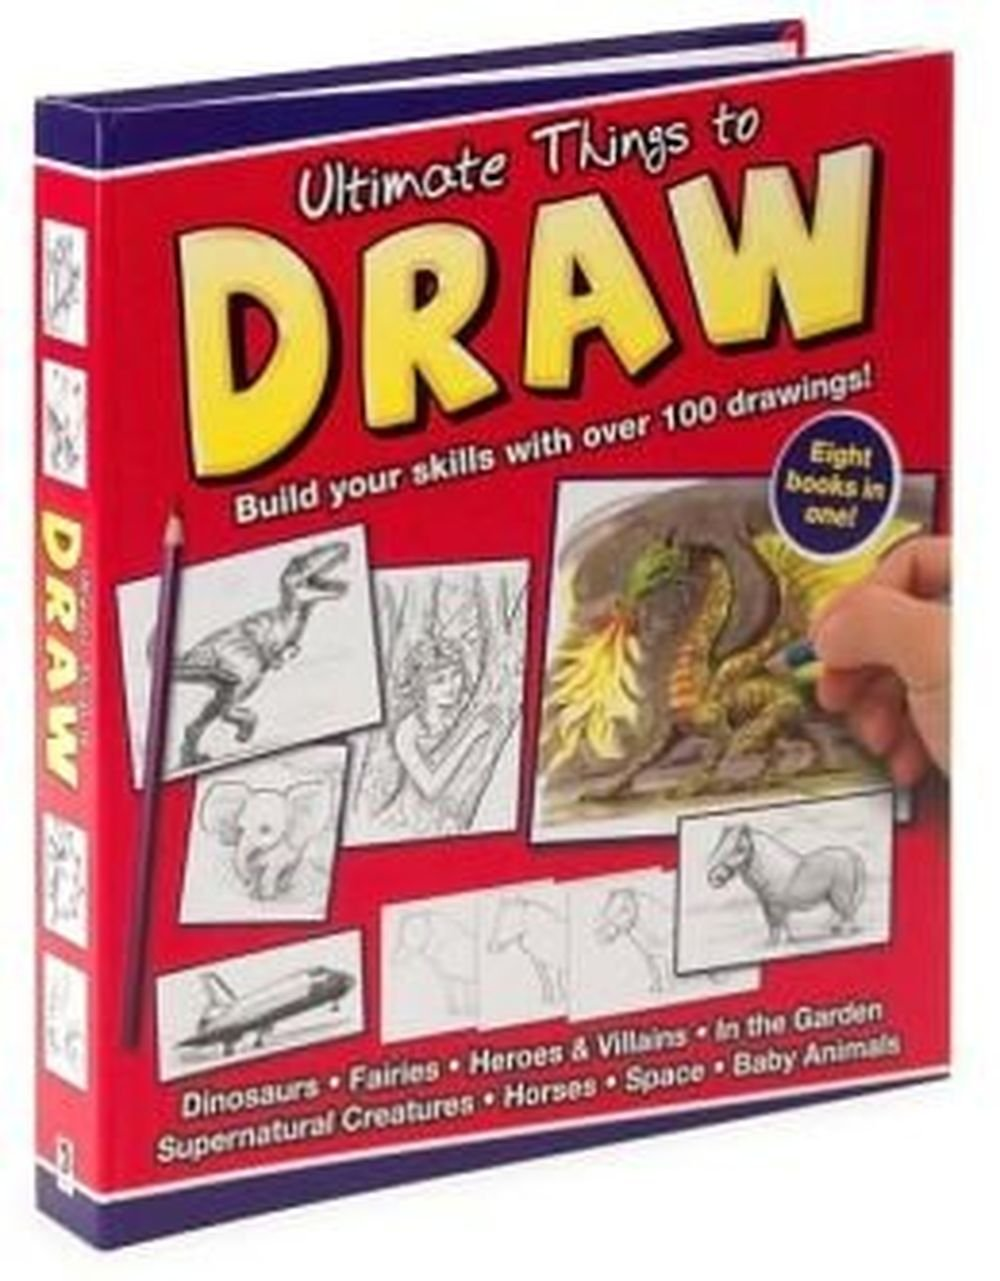 Ultimate Things To Draw Build Your Skills With Over 100 Drawings